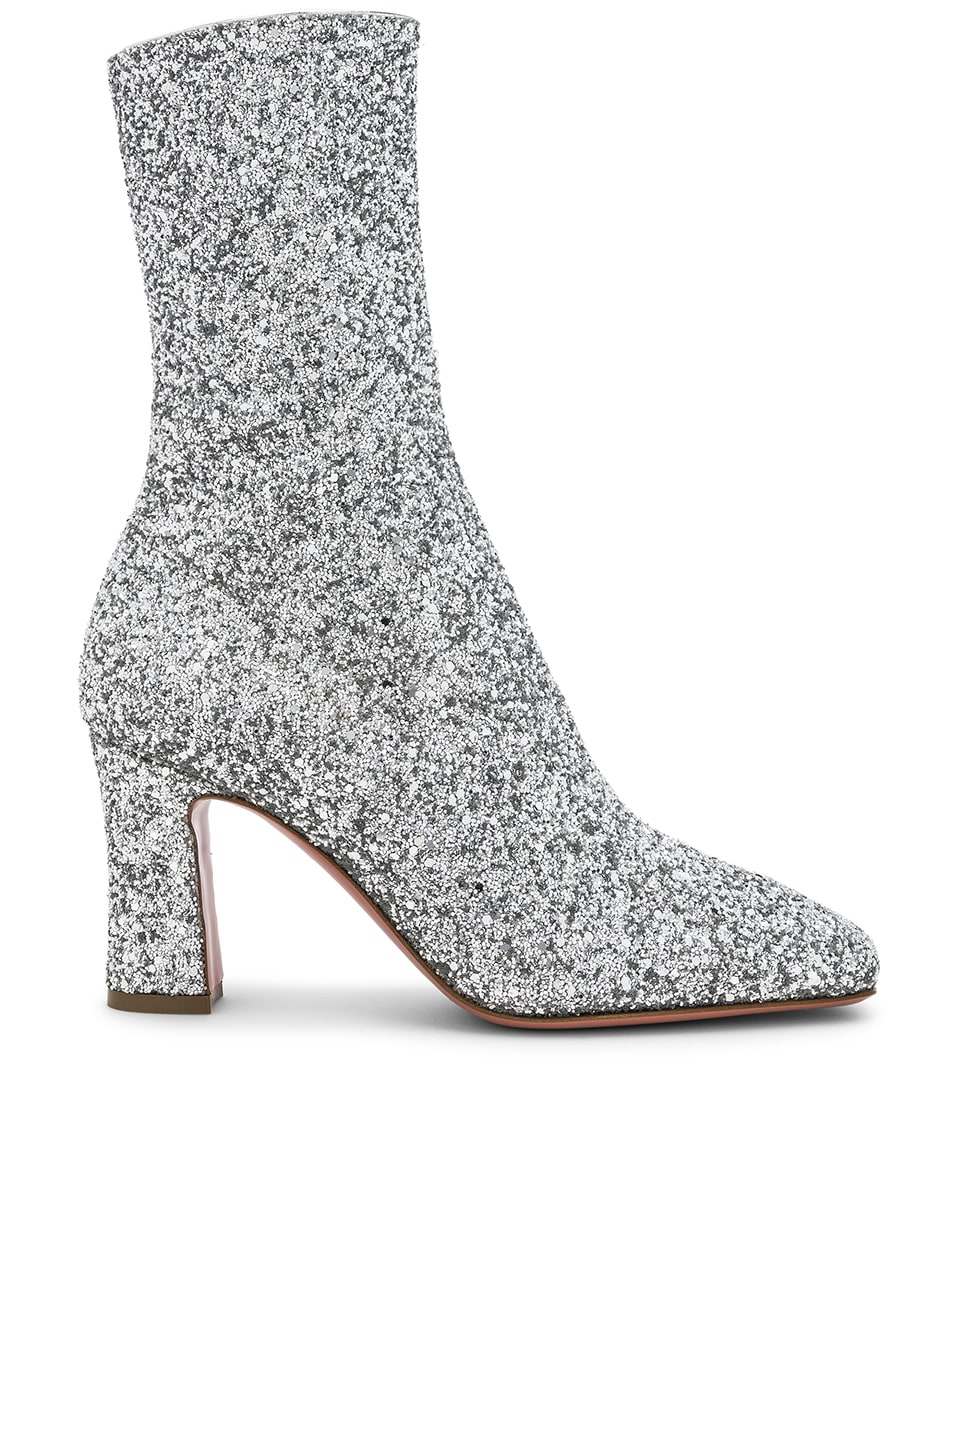 Image 1 of AMINA MUADDI Glitter Stretch Sabrina Ankle Boots in Silver